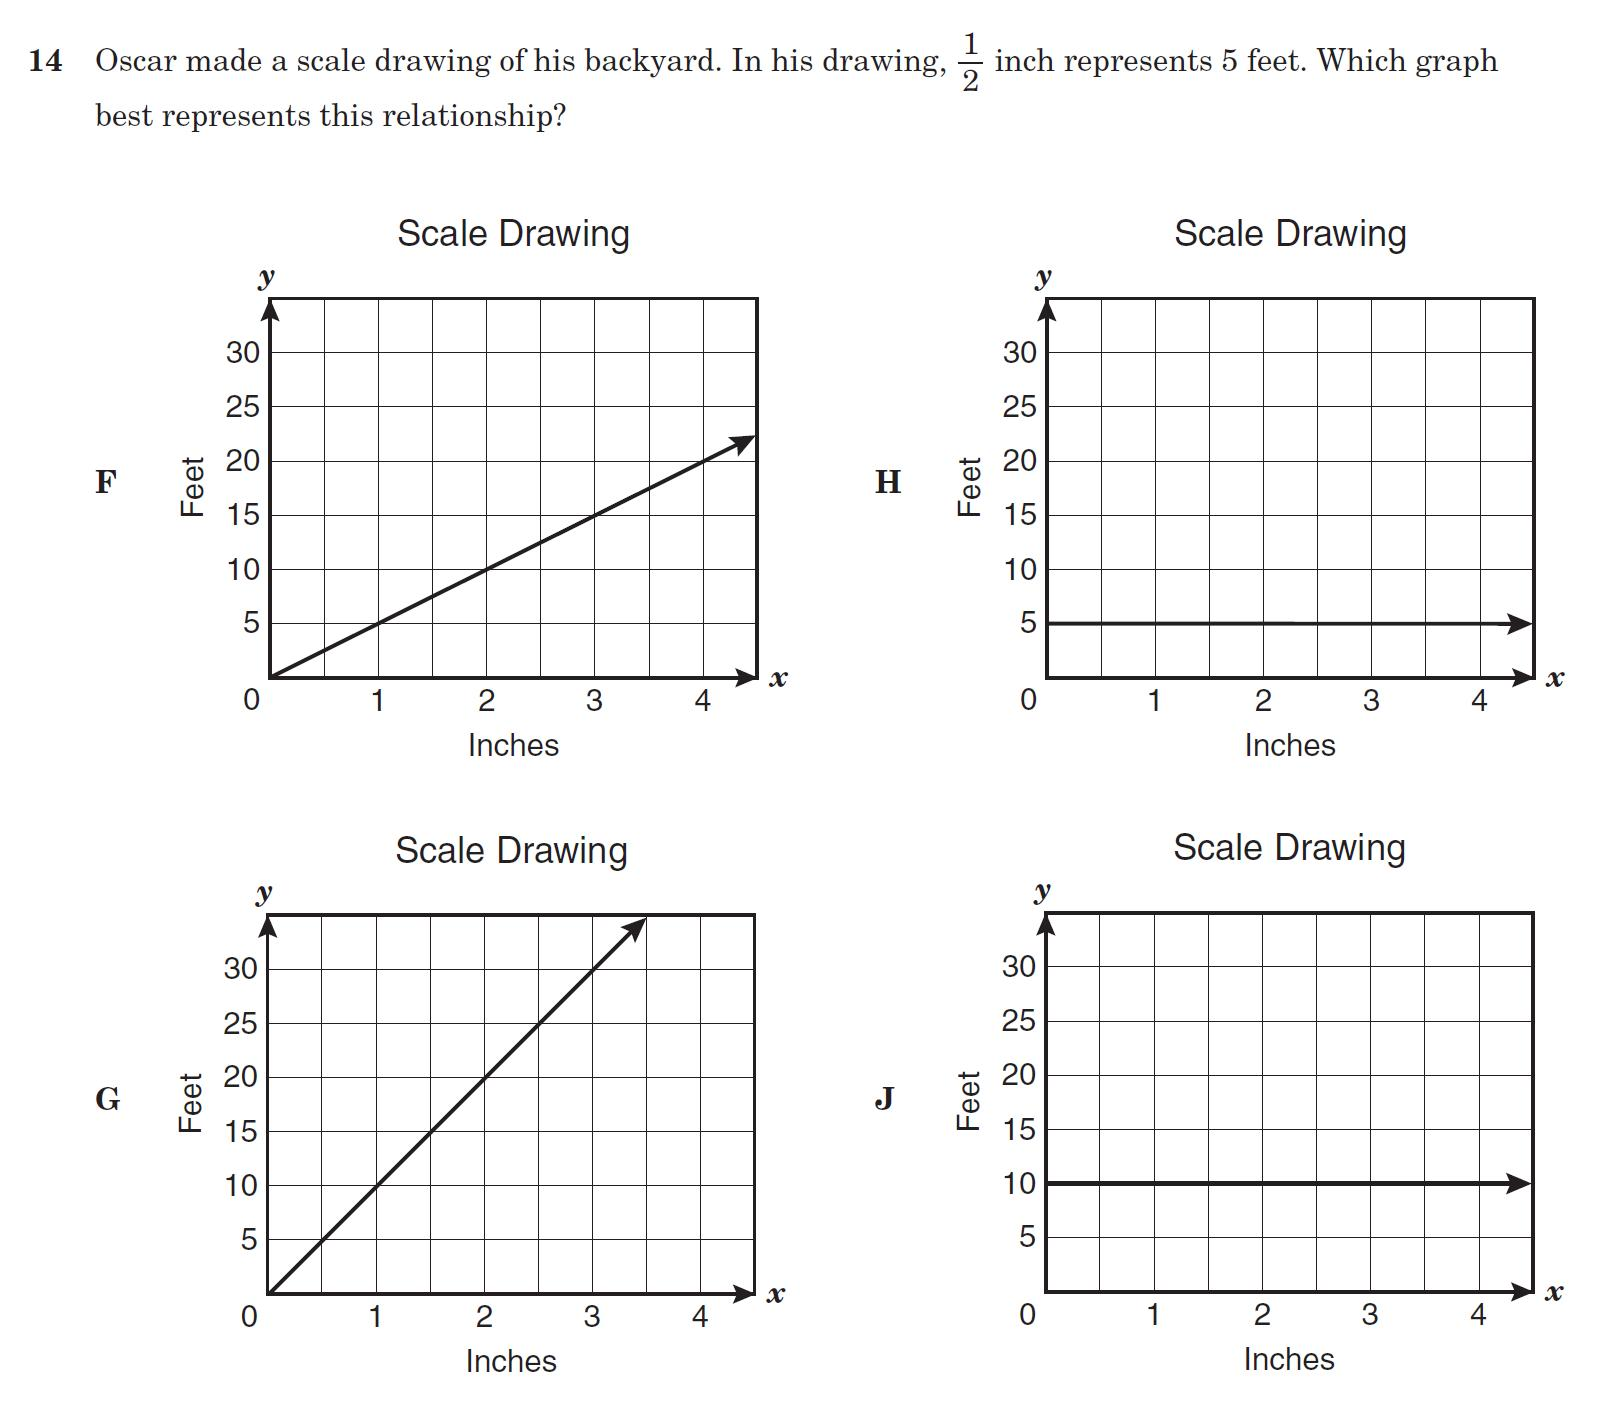 Worksheets Proportional Relationship Worksheet mathinthemedian 7th 2009 taks review sheets problem 14